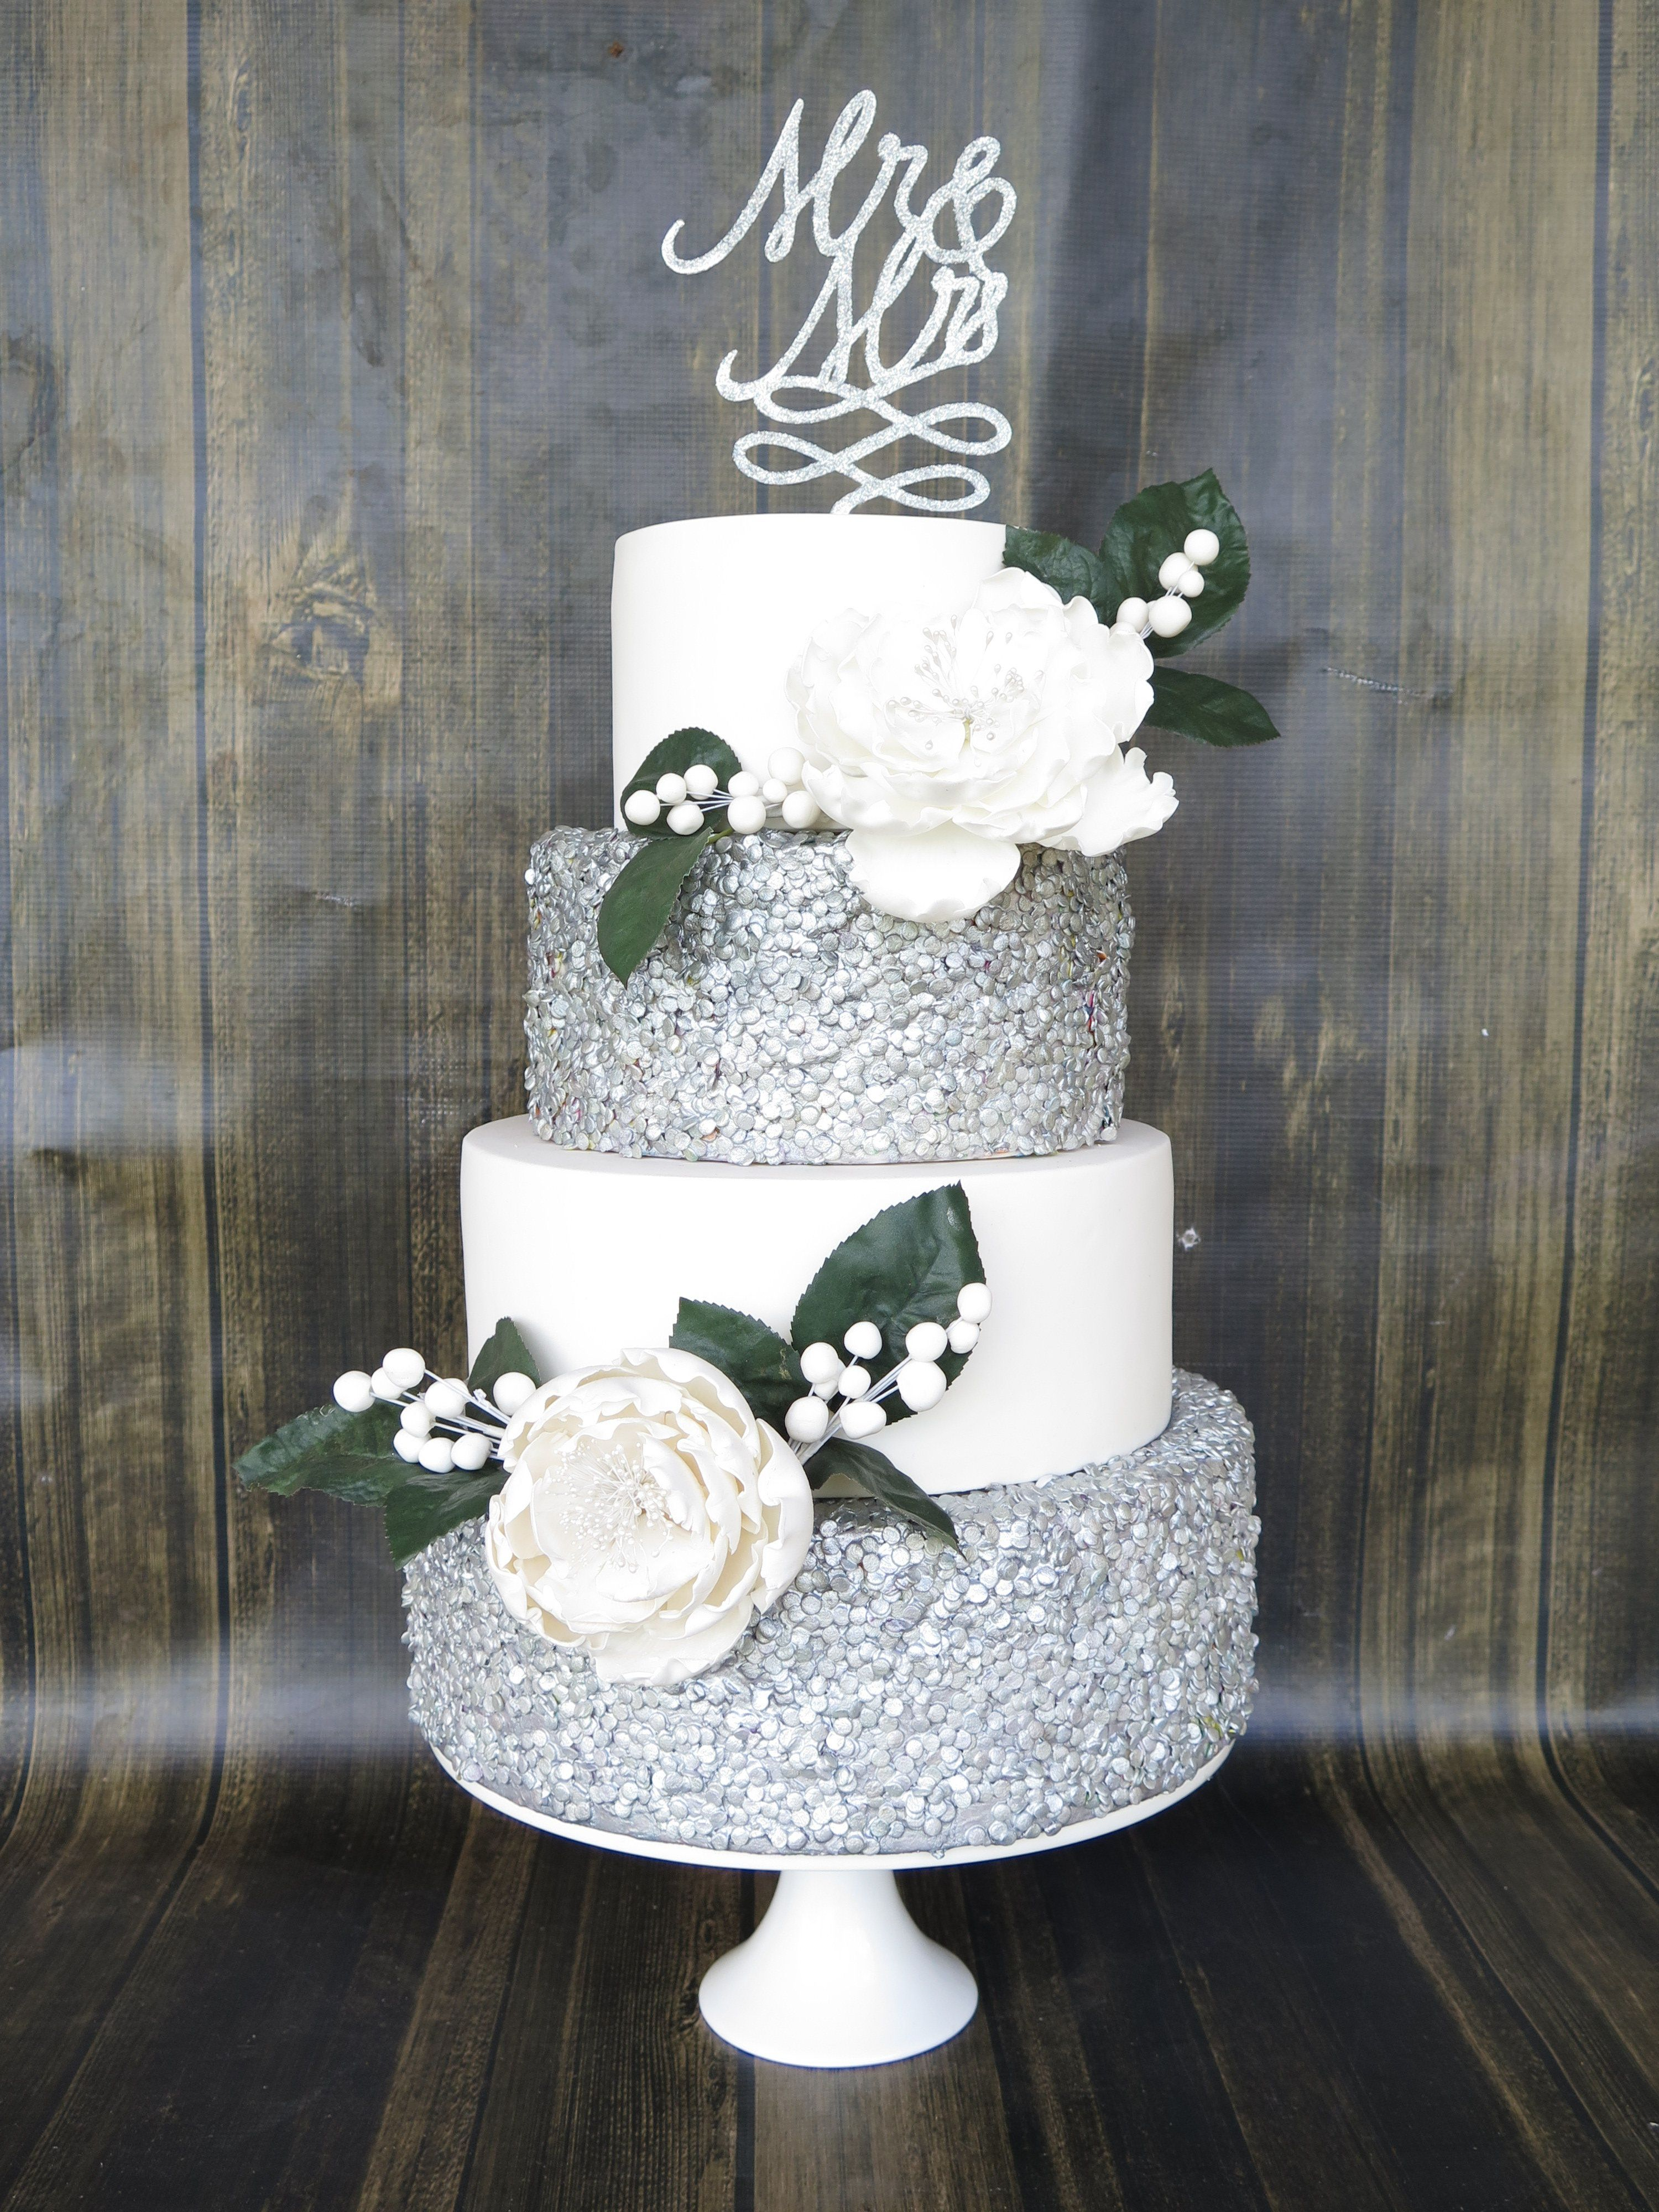 4 tier wedding cake silver edible confettisequins larege fondant flowers sparkly